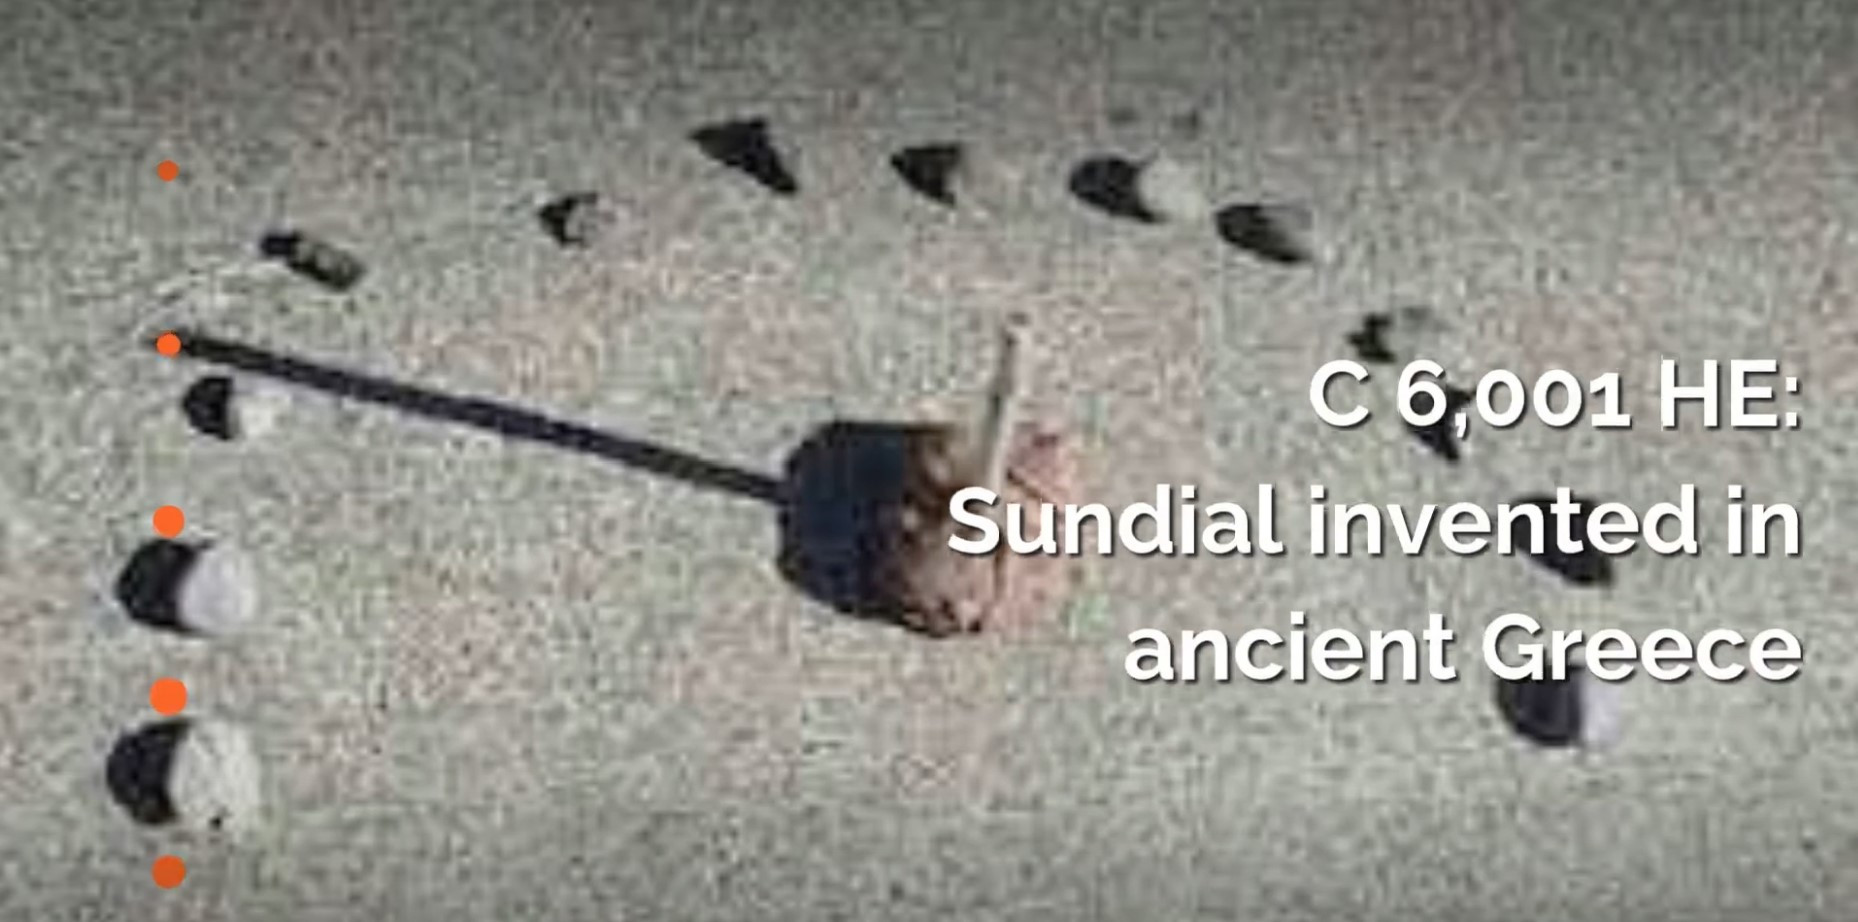 06001 HE sundial invented in greece.jpg